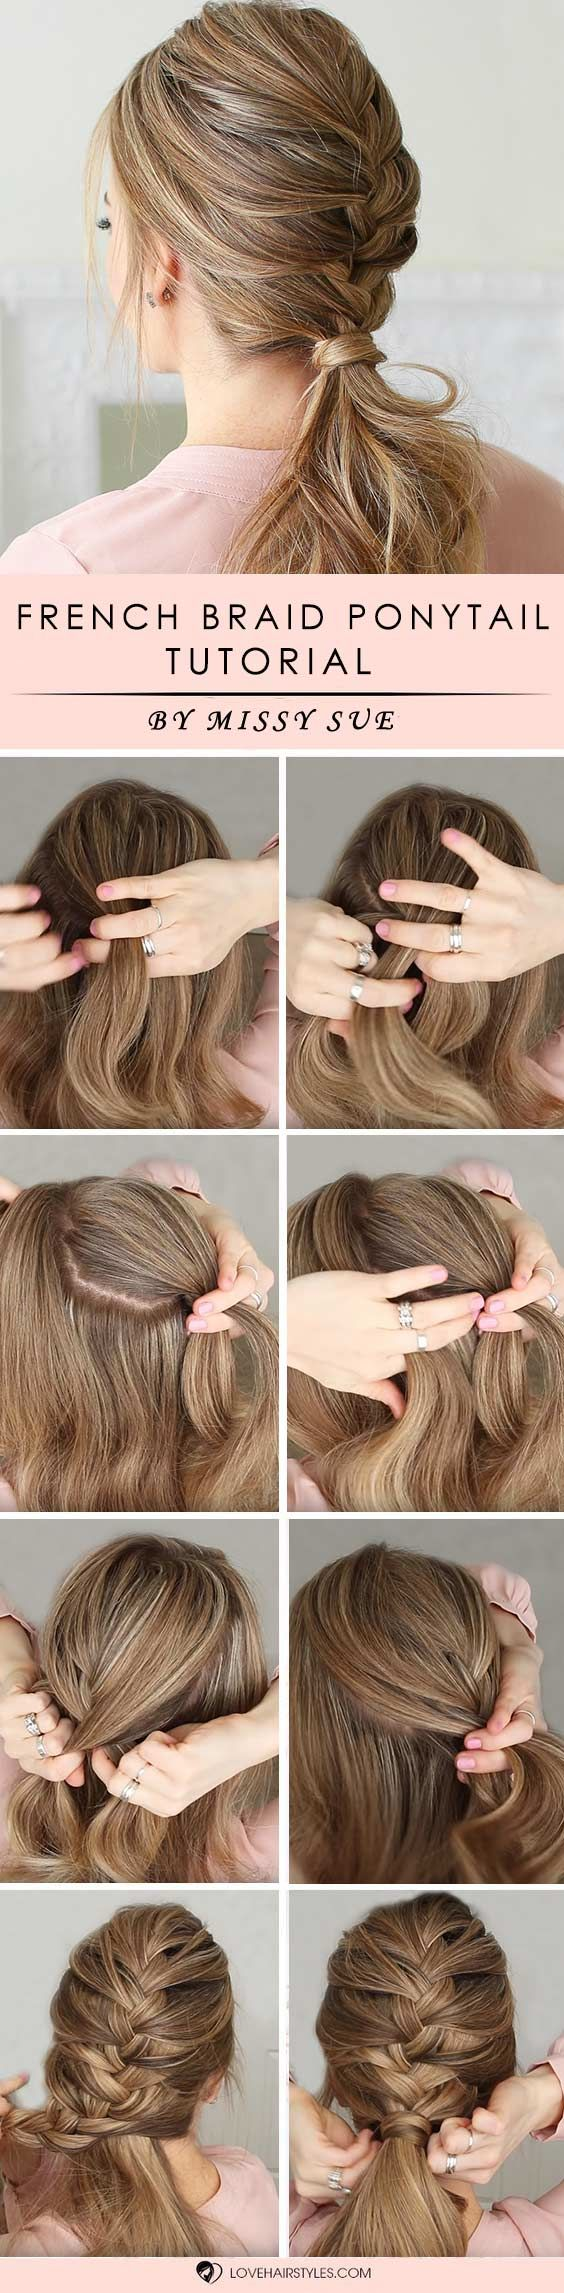 French Braid Ponytail #braids #hairtutorials